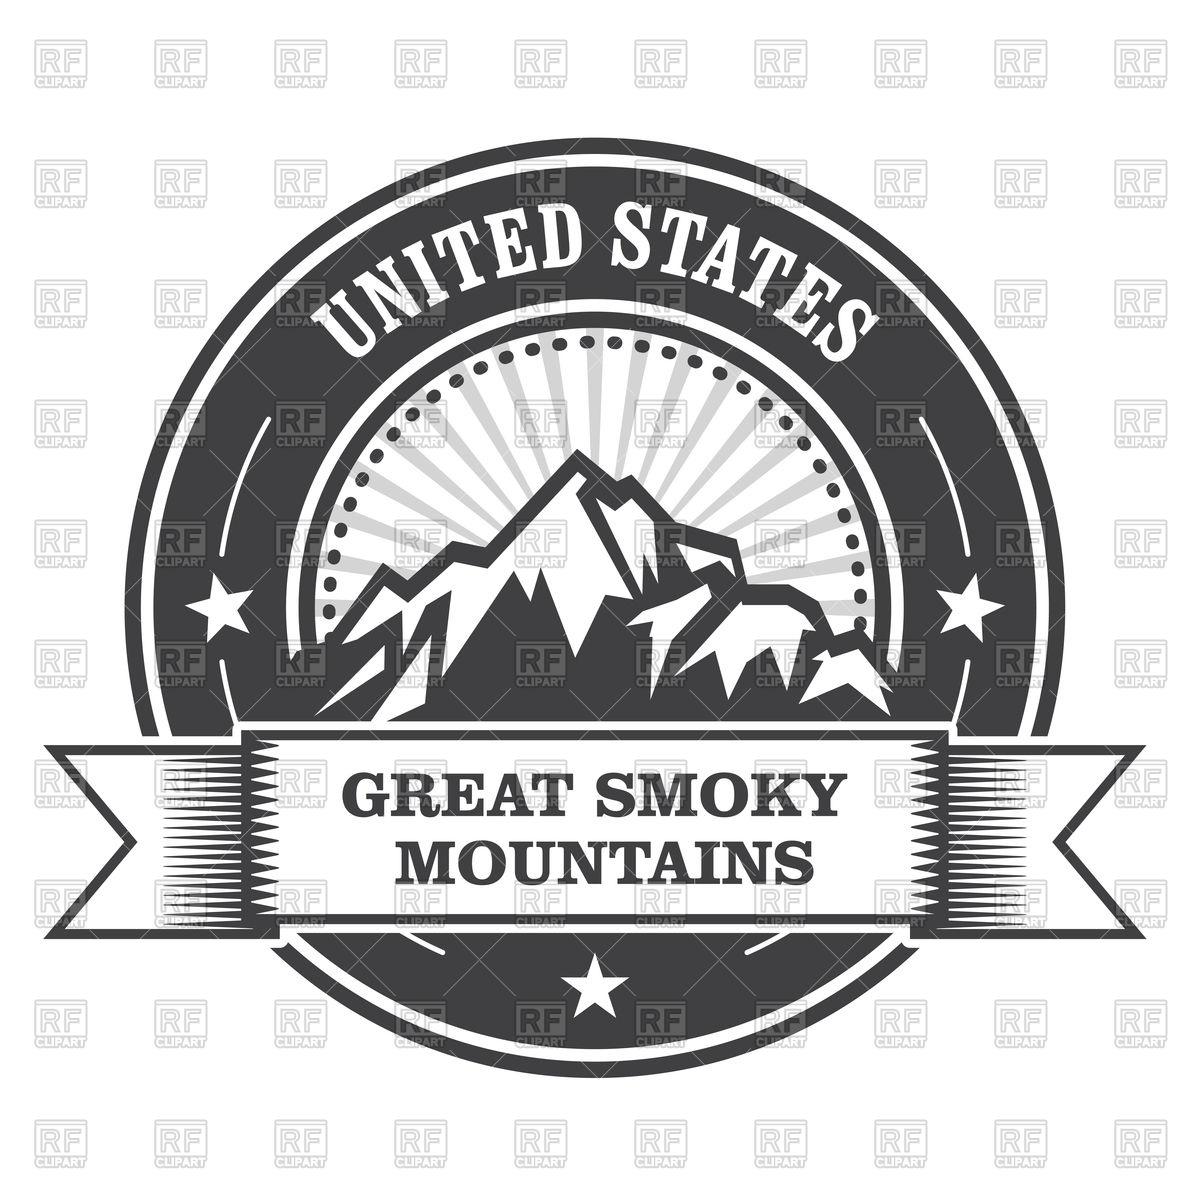 Great Smoky Mountains stamp.